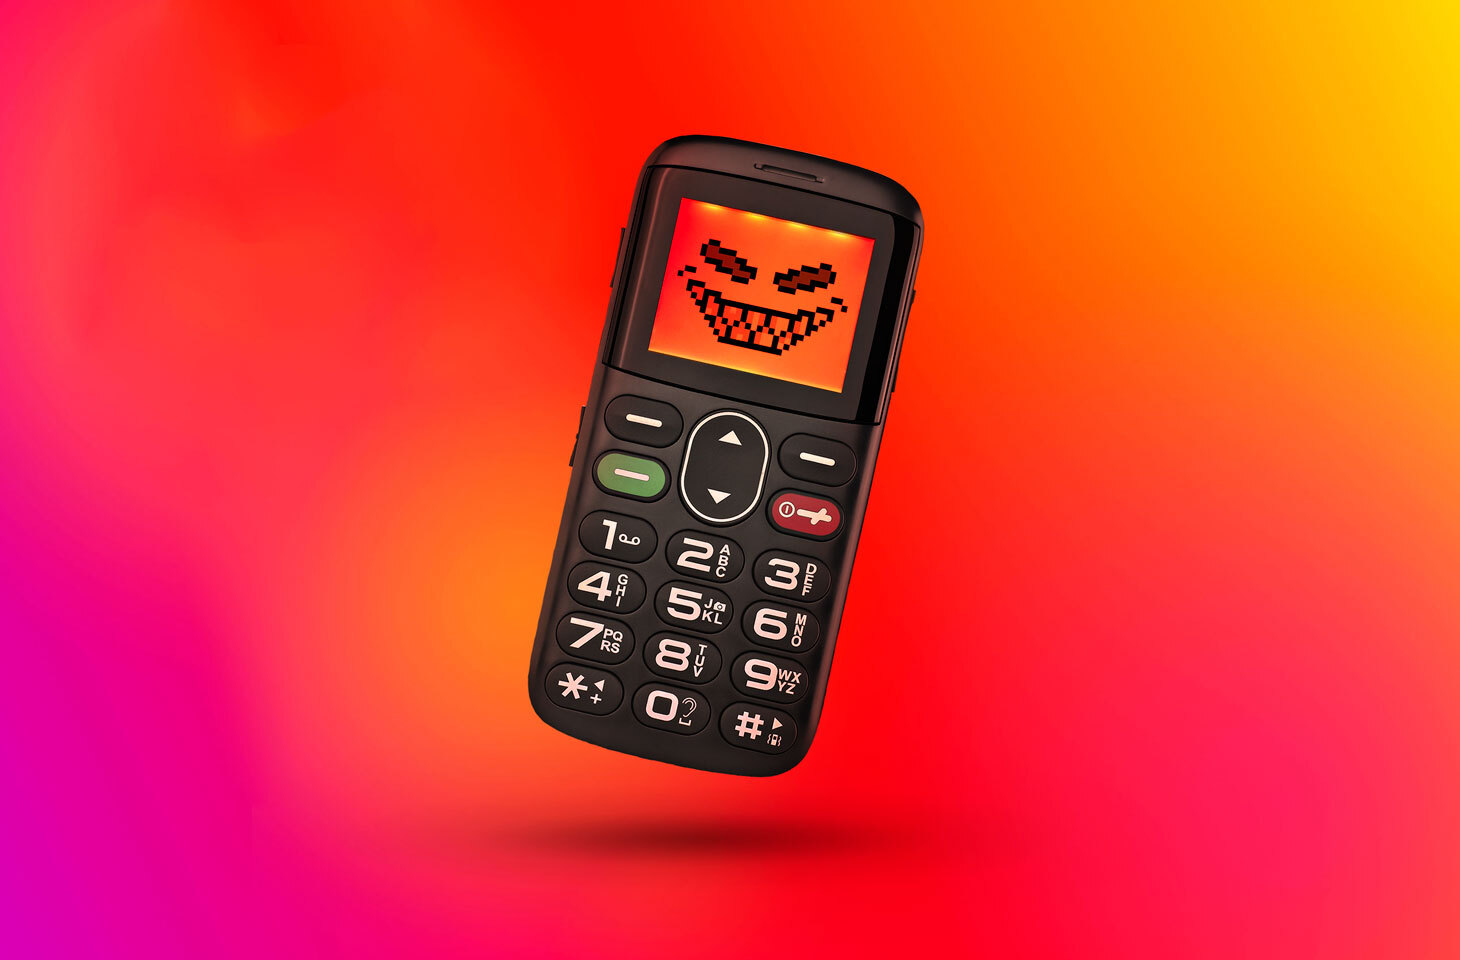 Despite their entry-level functionality, feature phones can be dangerous, too. Here's why